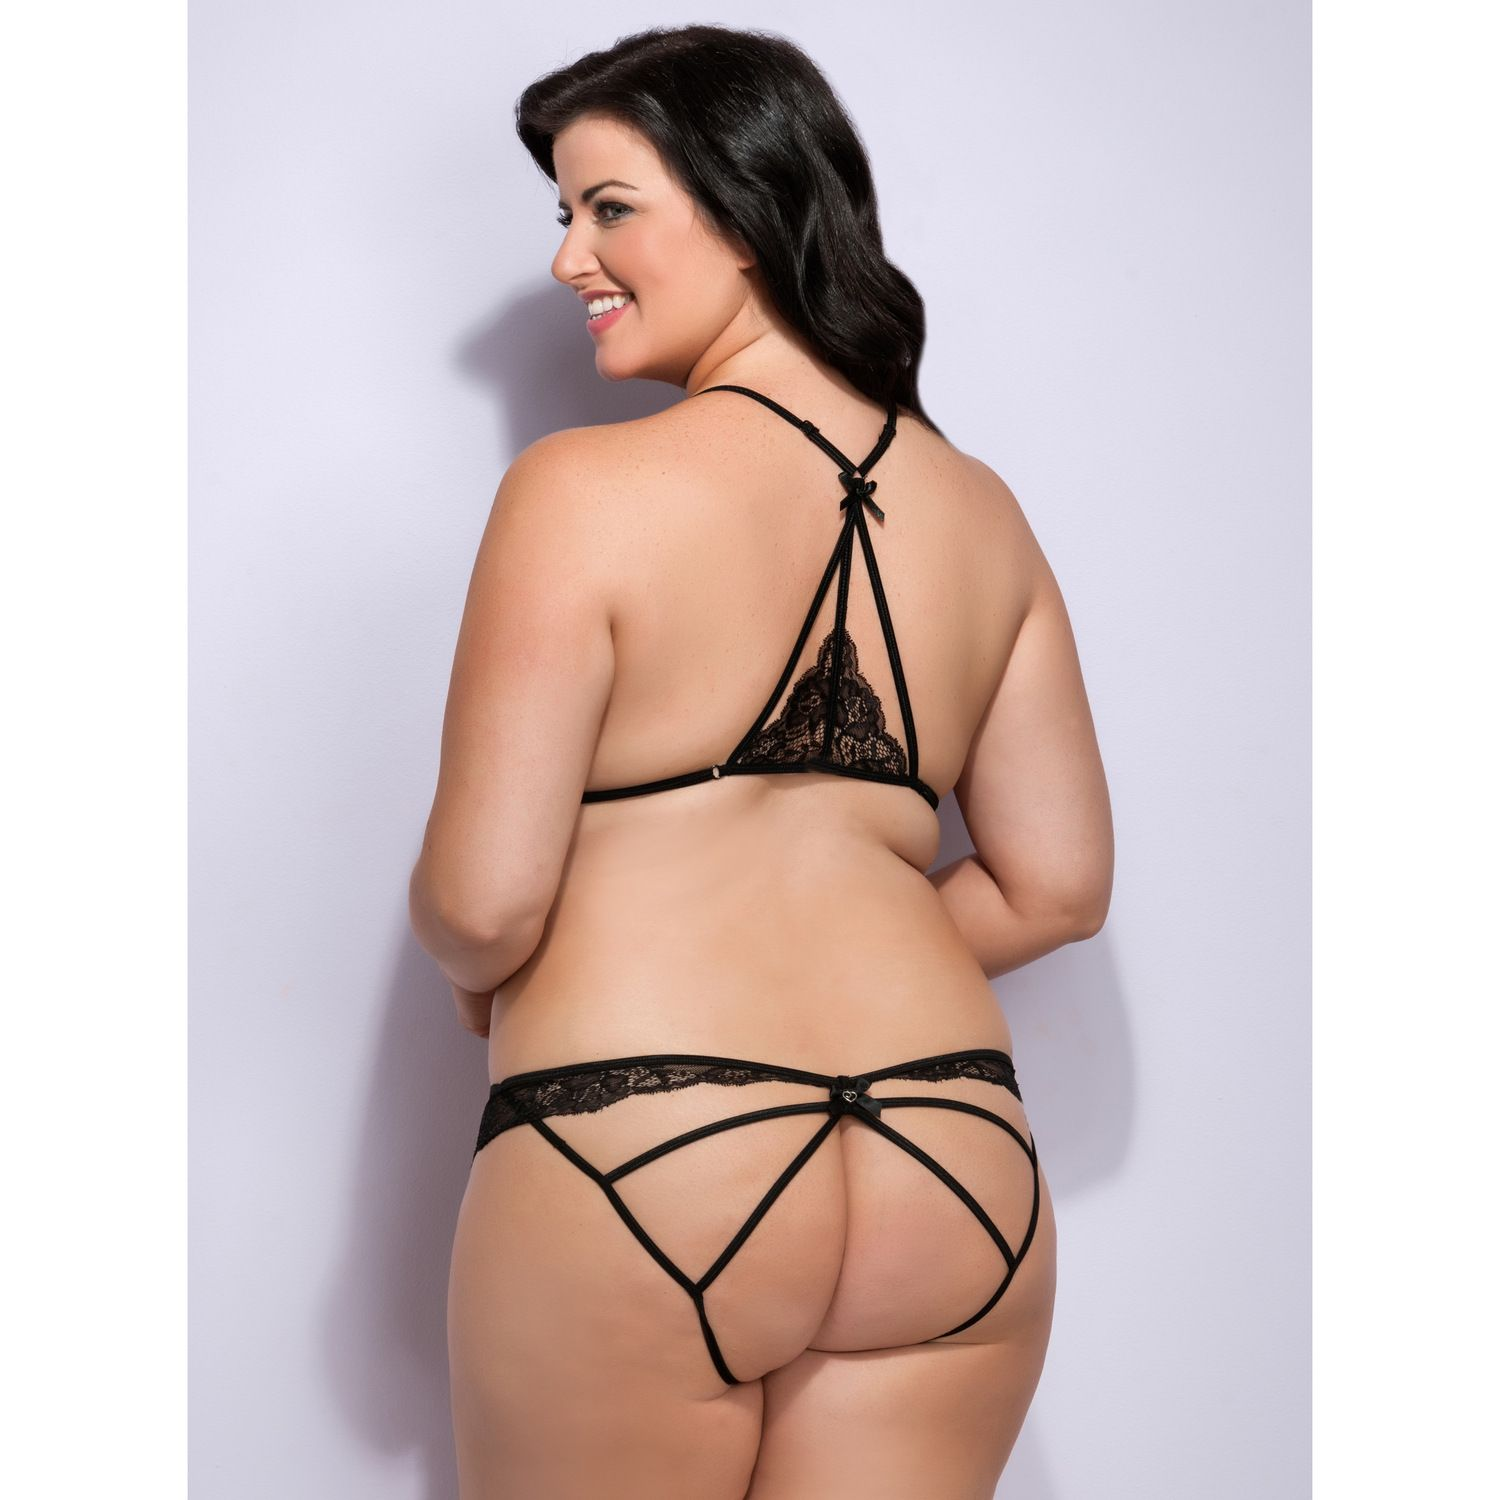 c6383ac3c6 First Look at Love Honey Lingerie in Plus